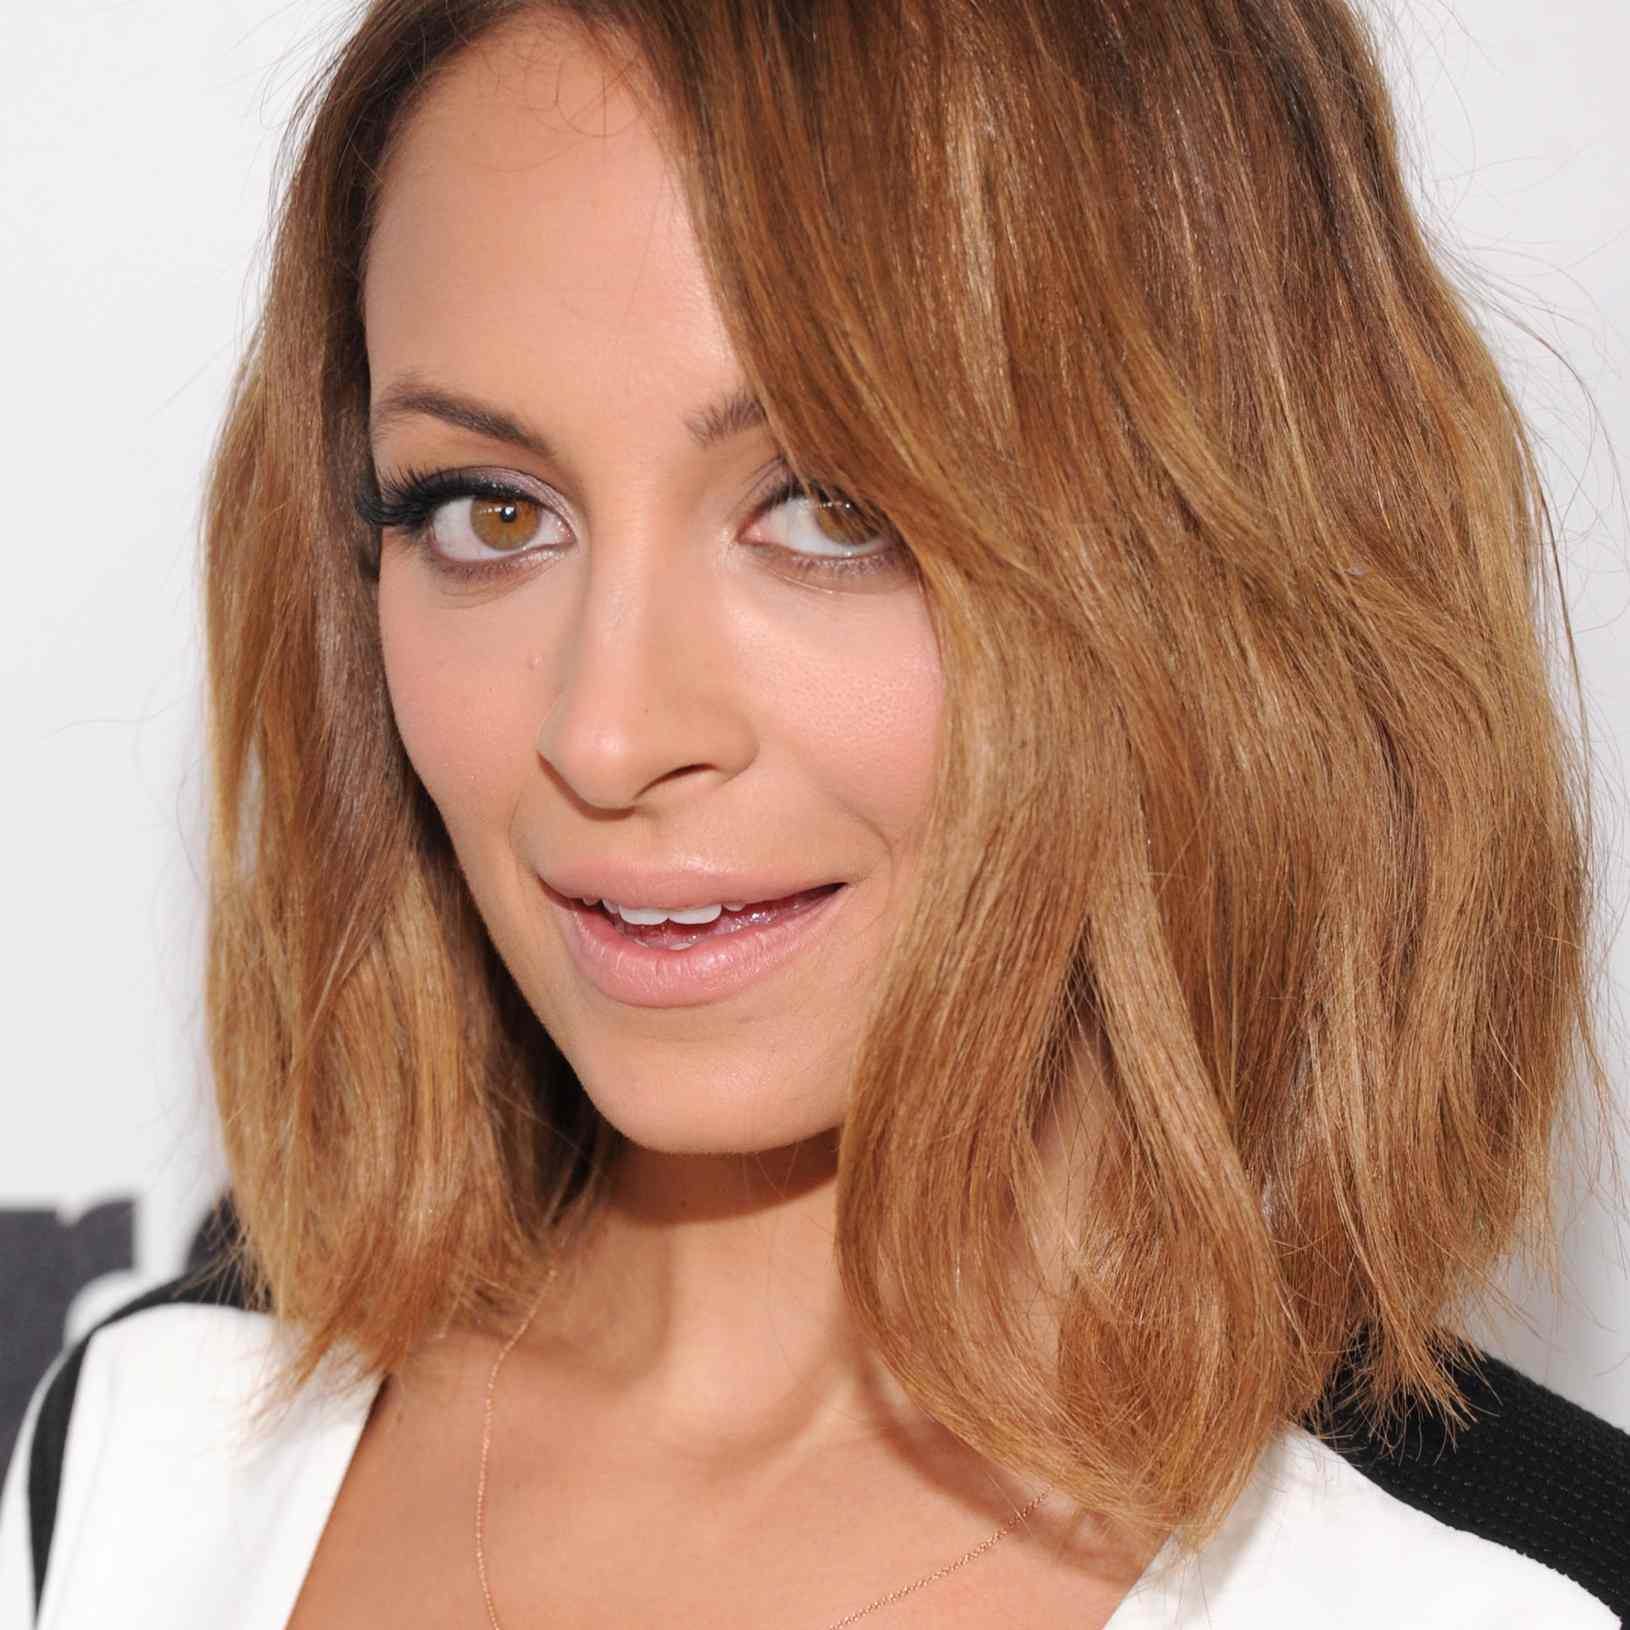 The Best Hairstyles for Women in Their 5s, As Pictured on Celebrities